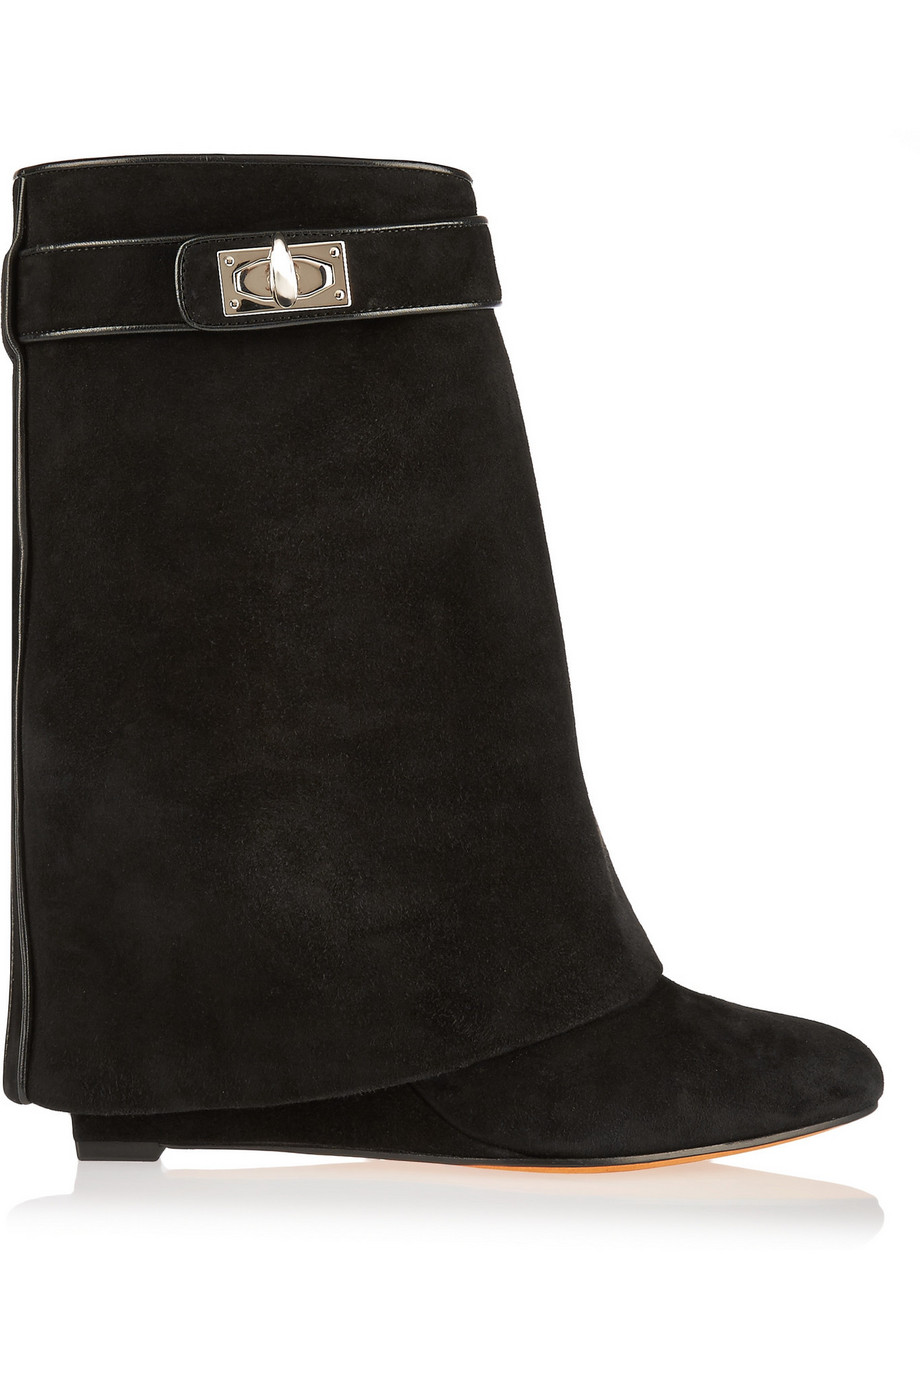 Givenchy Shark Lock Black Suede Wedge Ankle Boots, Women's US Size: 5, Size: 35.5